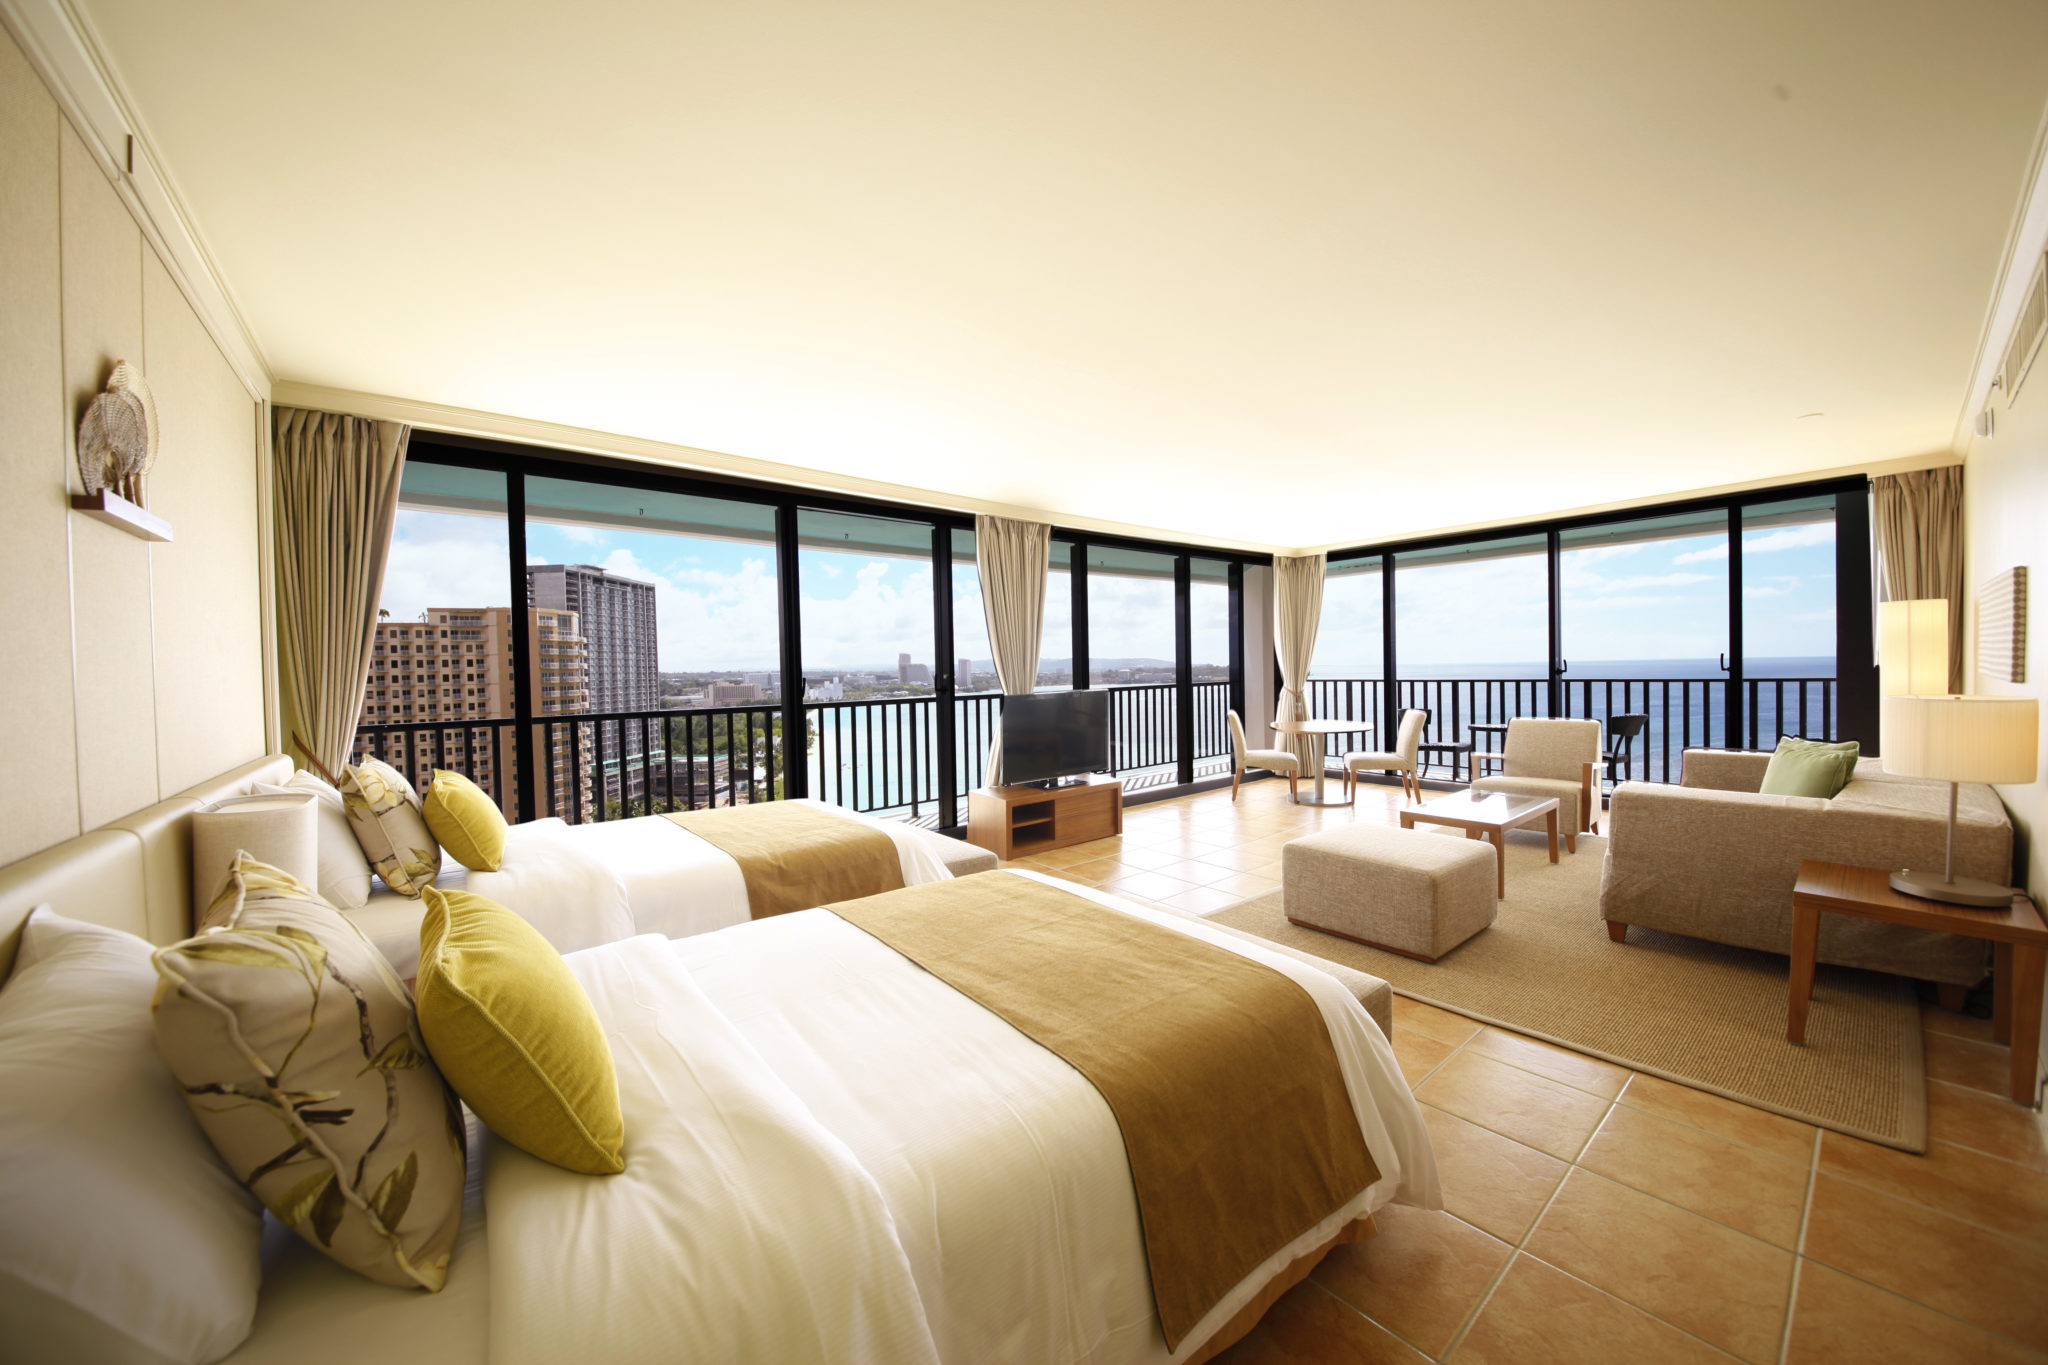 【Official Website Booking Only】Book Ocean Suite for 2+ nights, get daily breakfast!